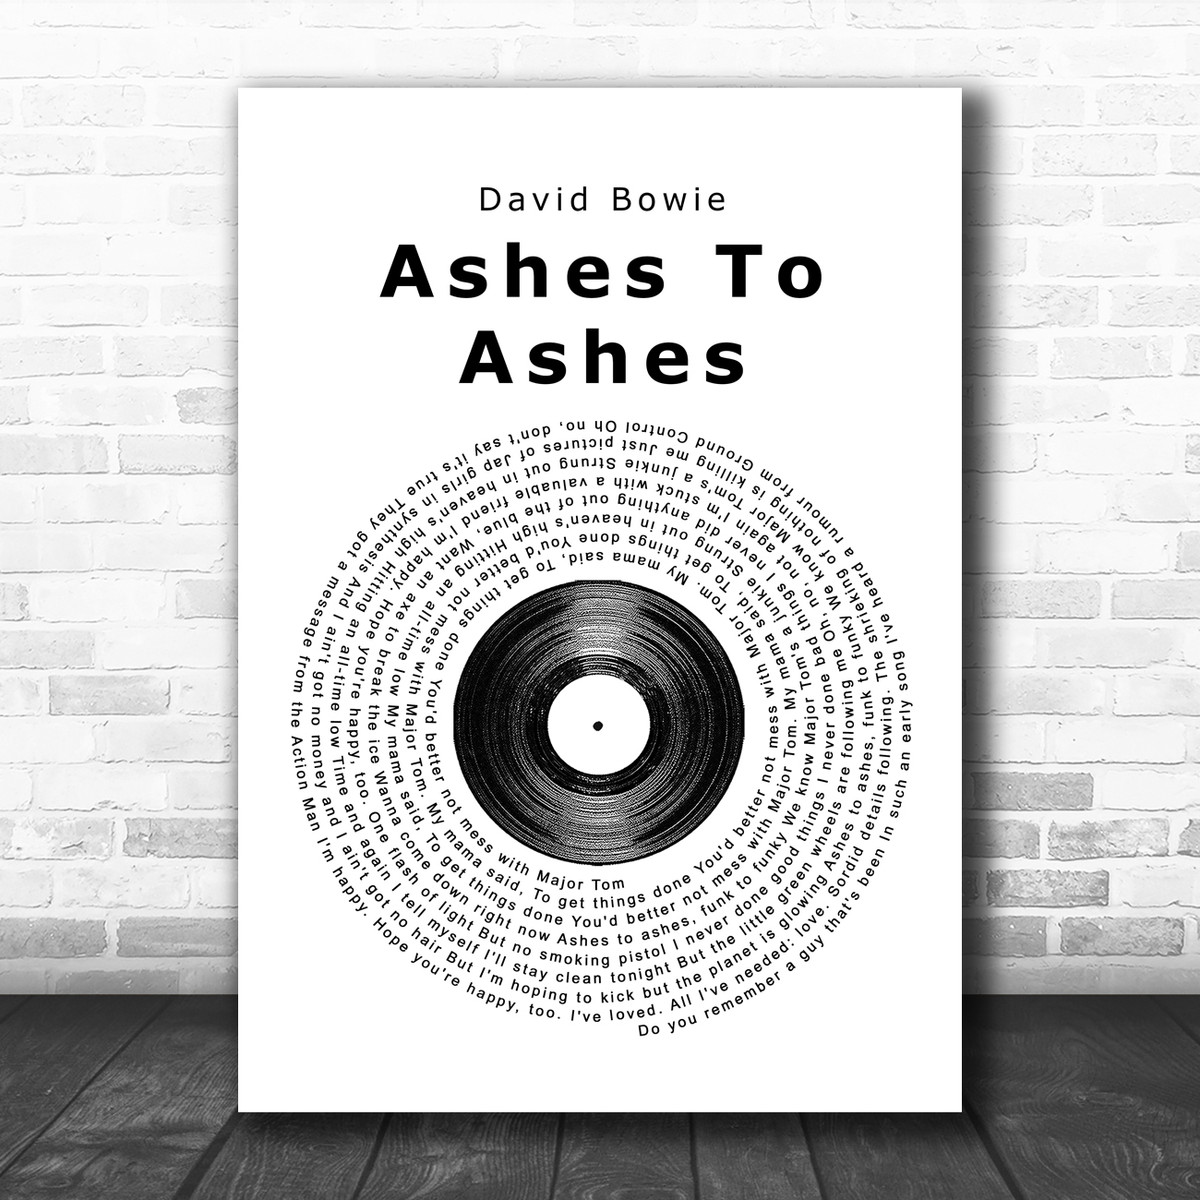 David Bowie Ashes To Ashes Vinyl Record Song Lyric Poster Print